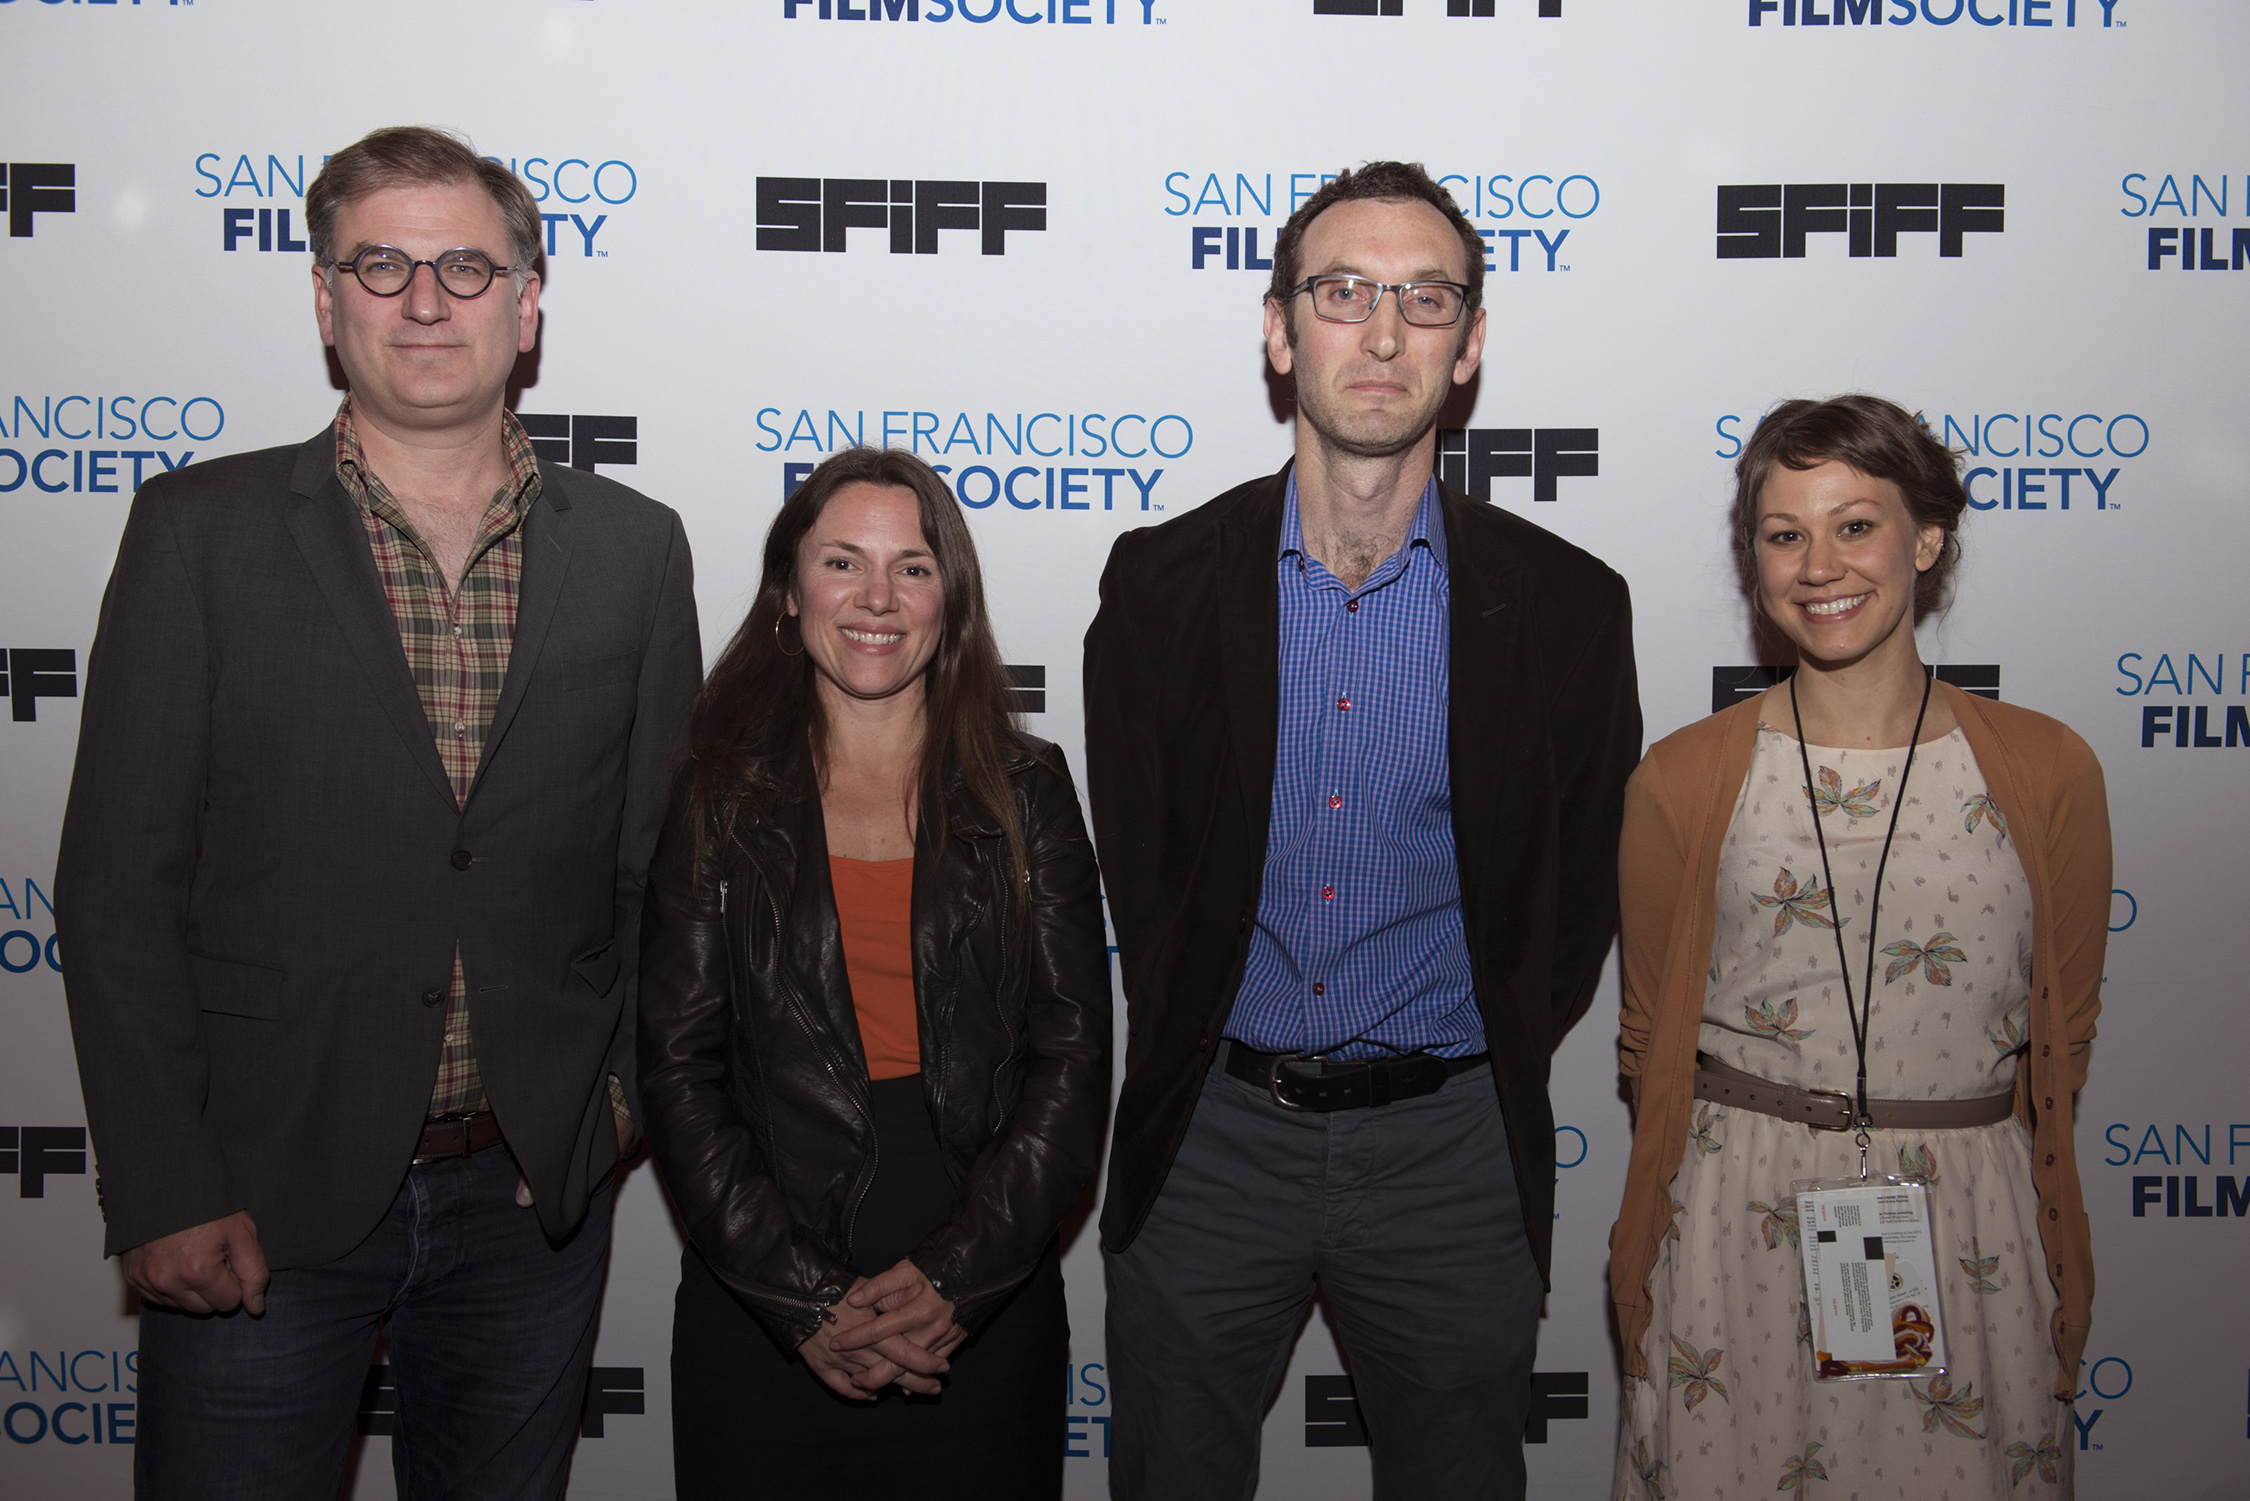 San Francisco Film Society Executive Director Noah Cowan, producer Amanda McBaine, Jesse Moss, director of THE OVERNIGHTERS, the winner of the Golden Gate Award for a Documentary Feature and Sara Dosa, director of THE LAST SEASON, the winner of the Golden Gate Award for a Bay Area Documentary at the Golden Gate Awards at the 57th San Francisco International Film Festival  Photo: Pat Mazzera